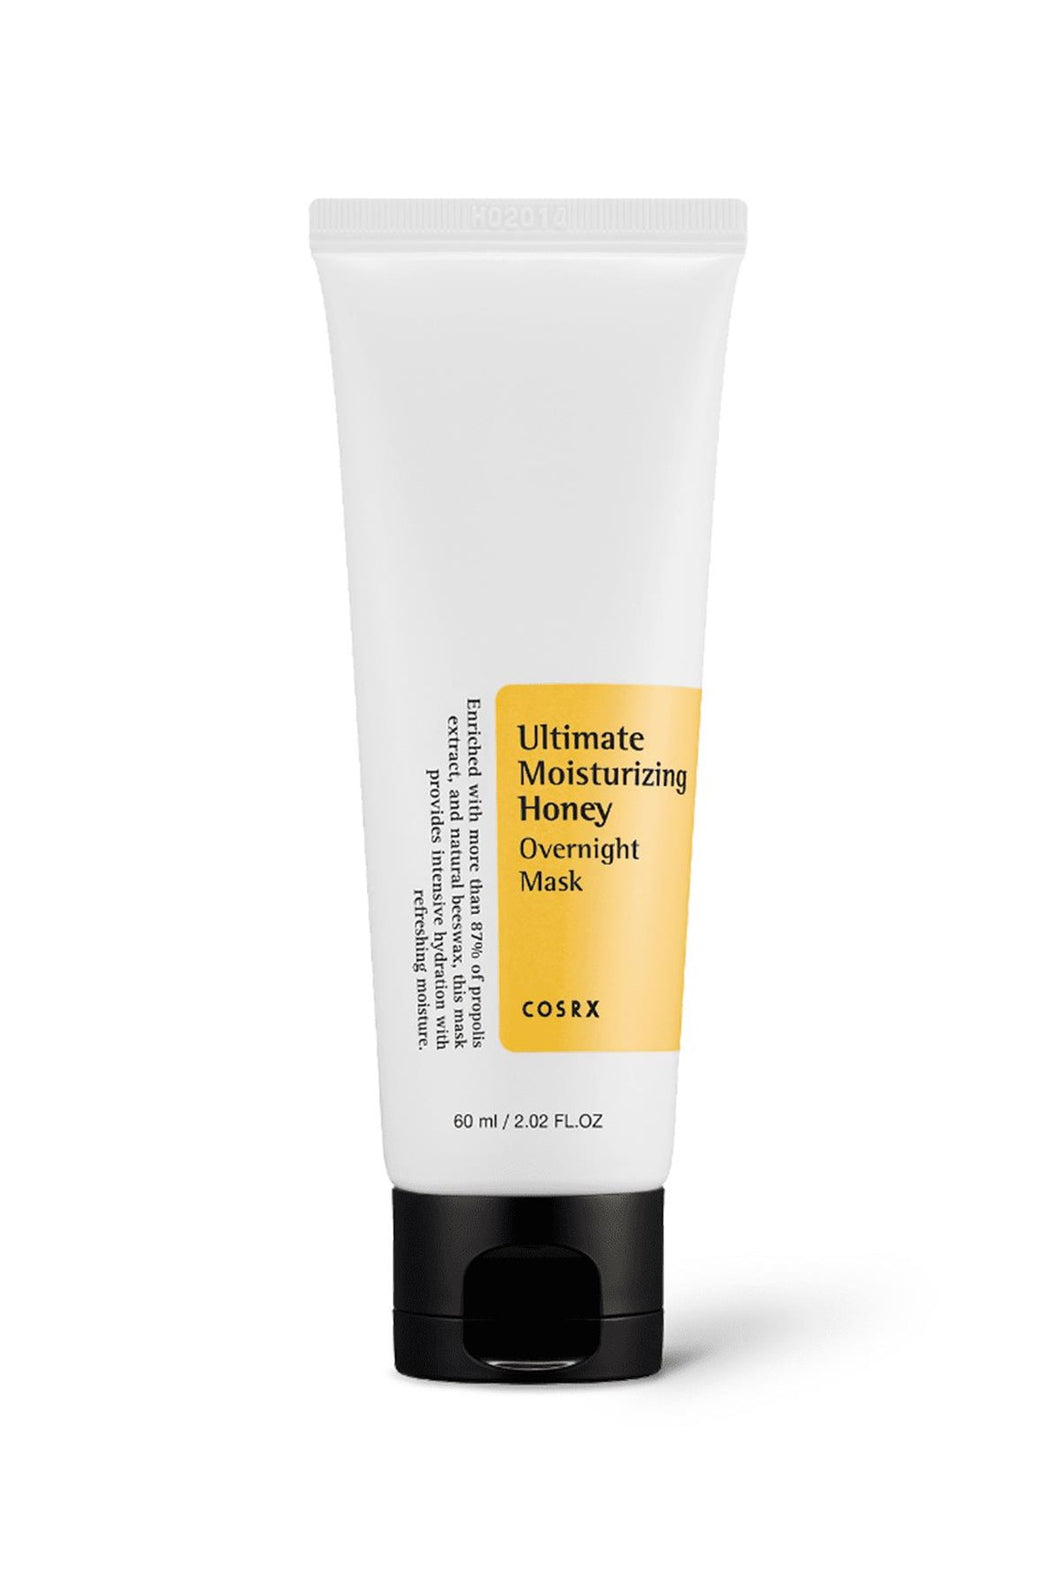 Cosrx Ultimate Moisturizing Honey Overnight Mask- Nemlendirici Bal Ekstreli Gece Maskesi